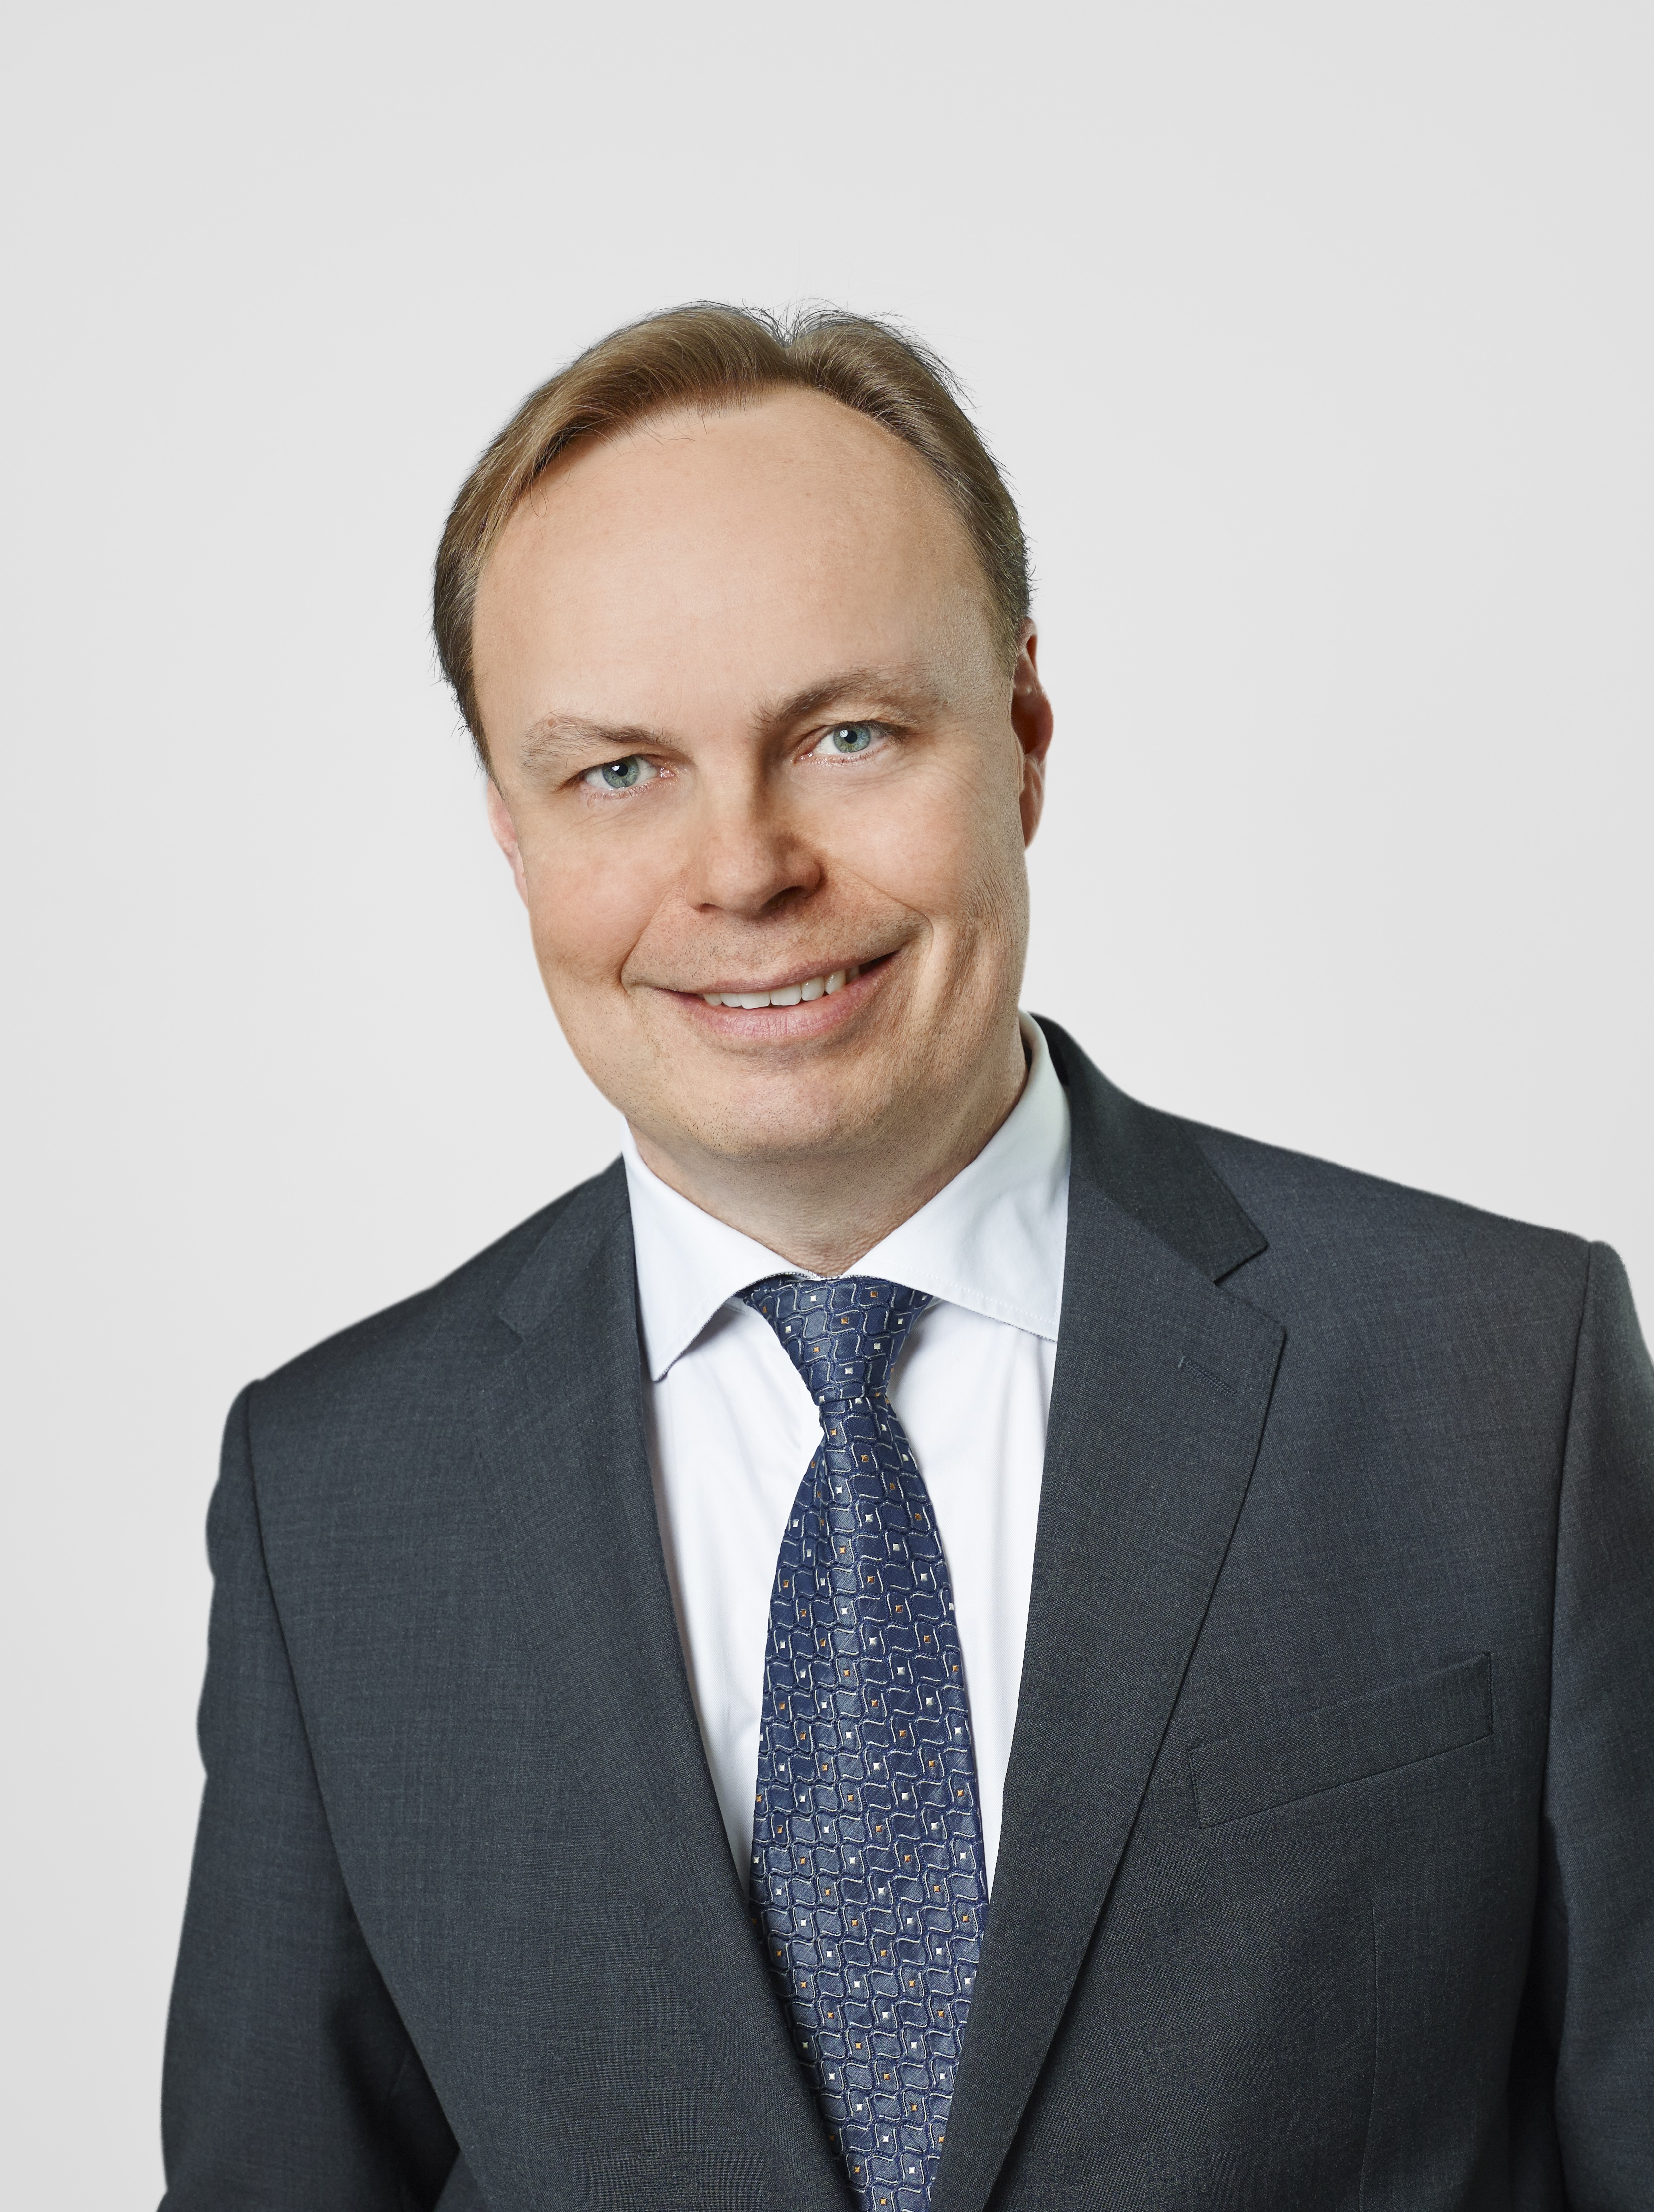 Peter Abrahamsson, Head of Sustainable Development at Preem